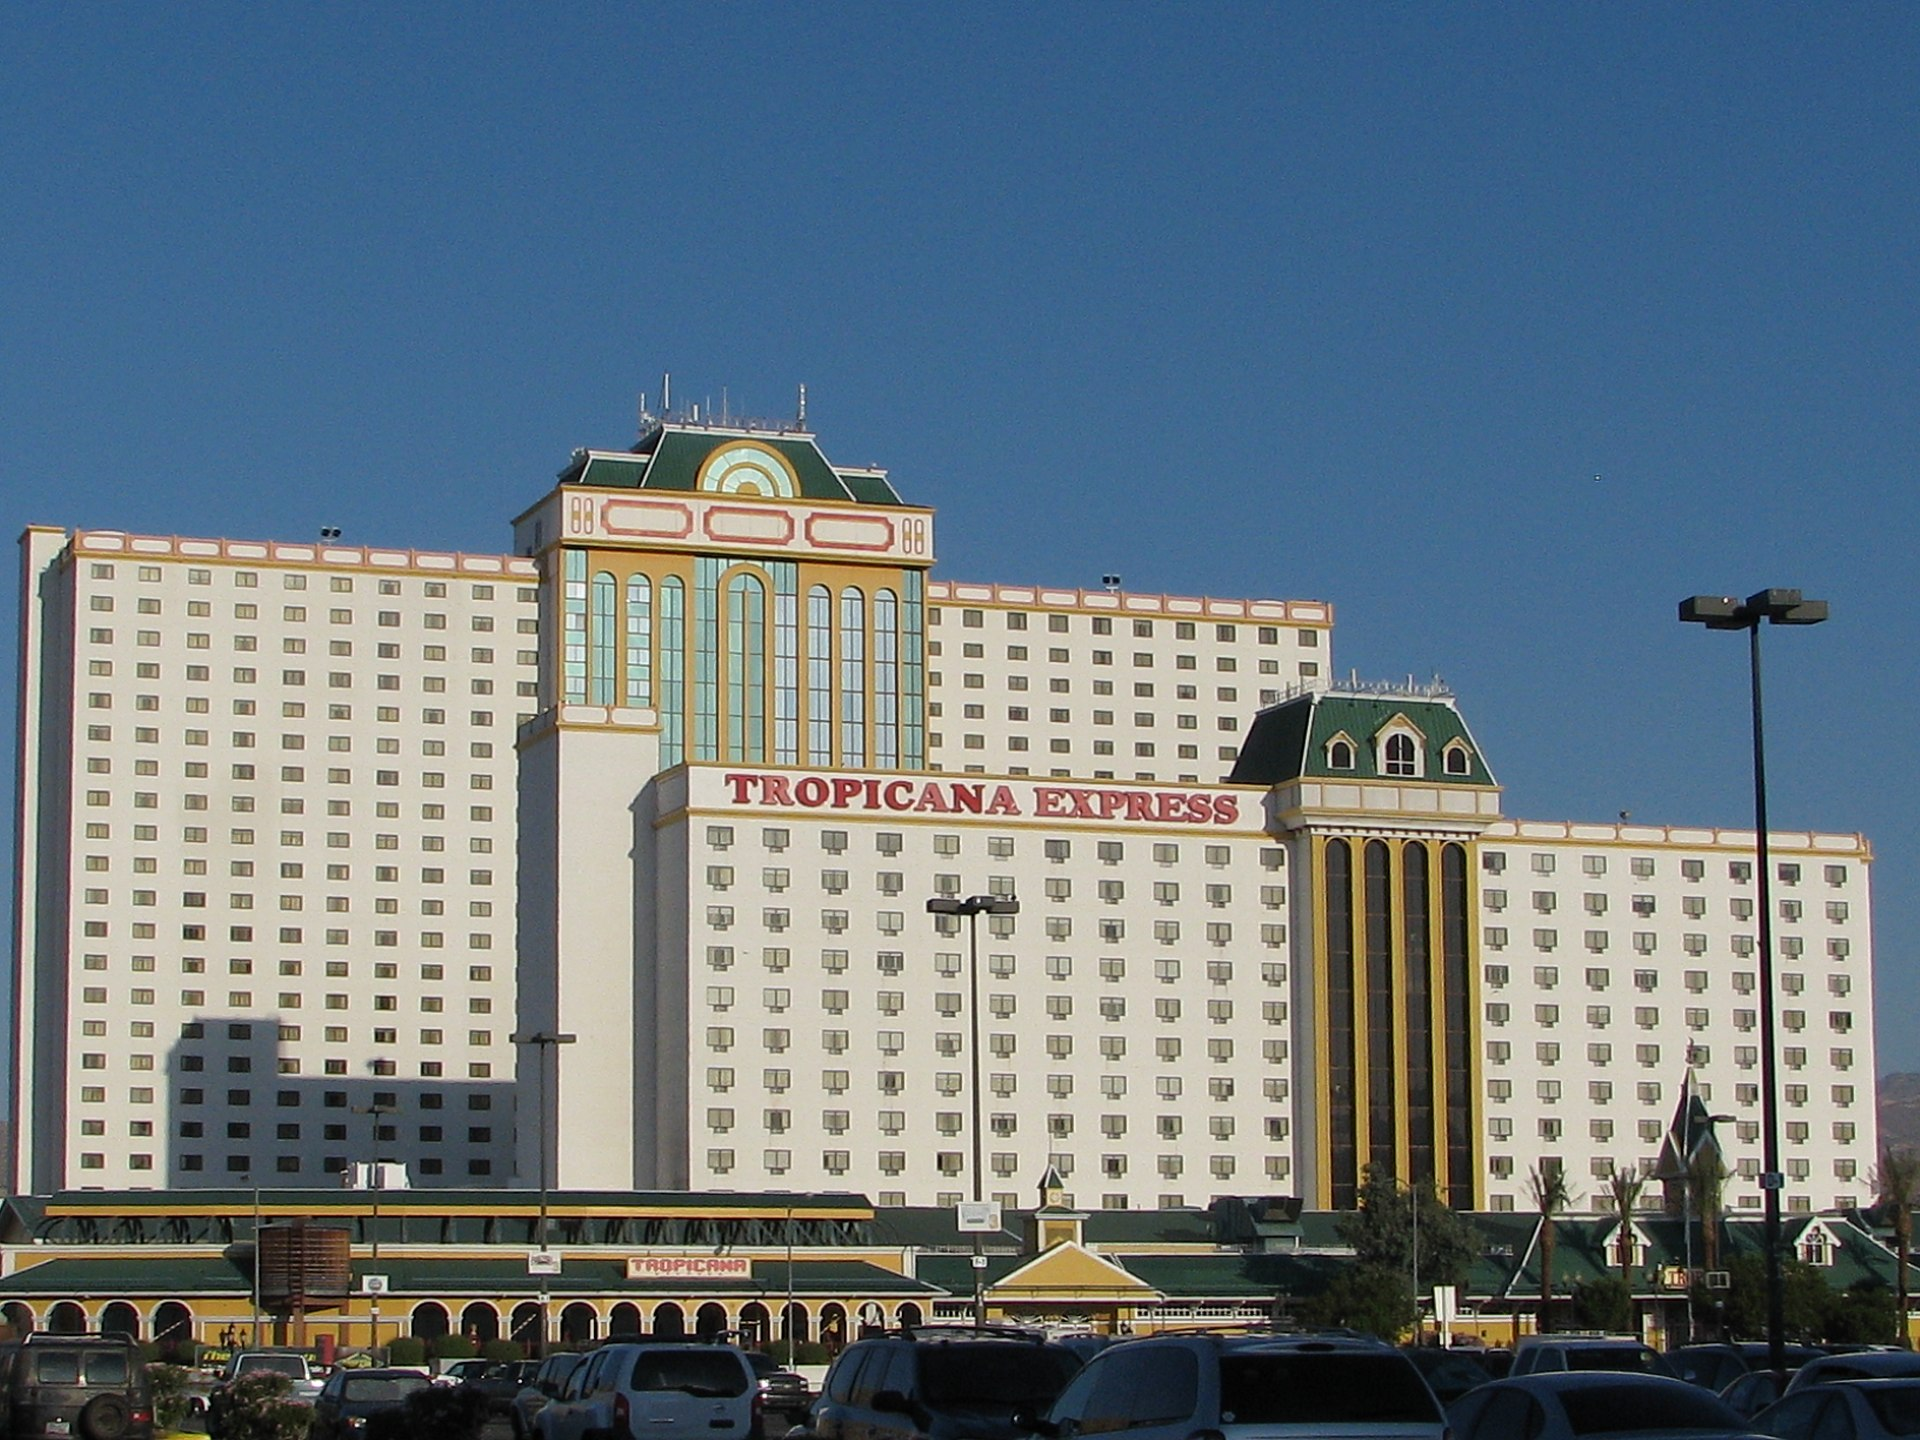 Tropicana Laughlin Wikipedia